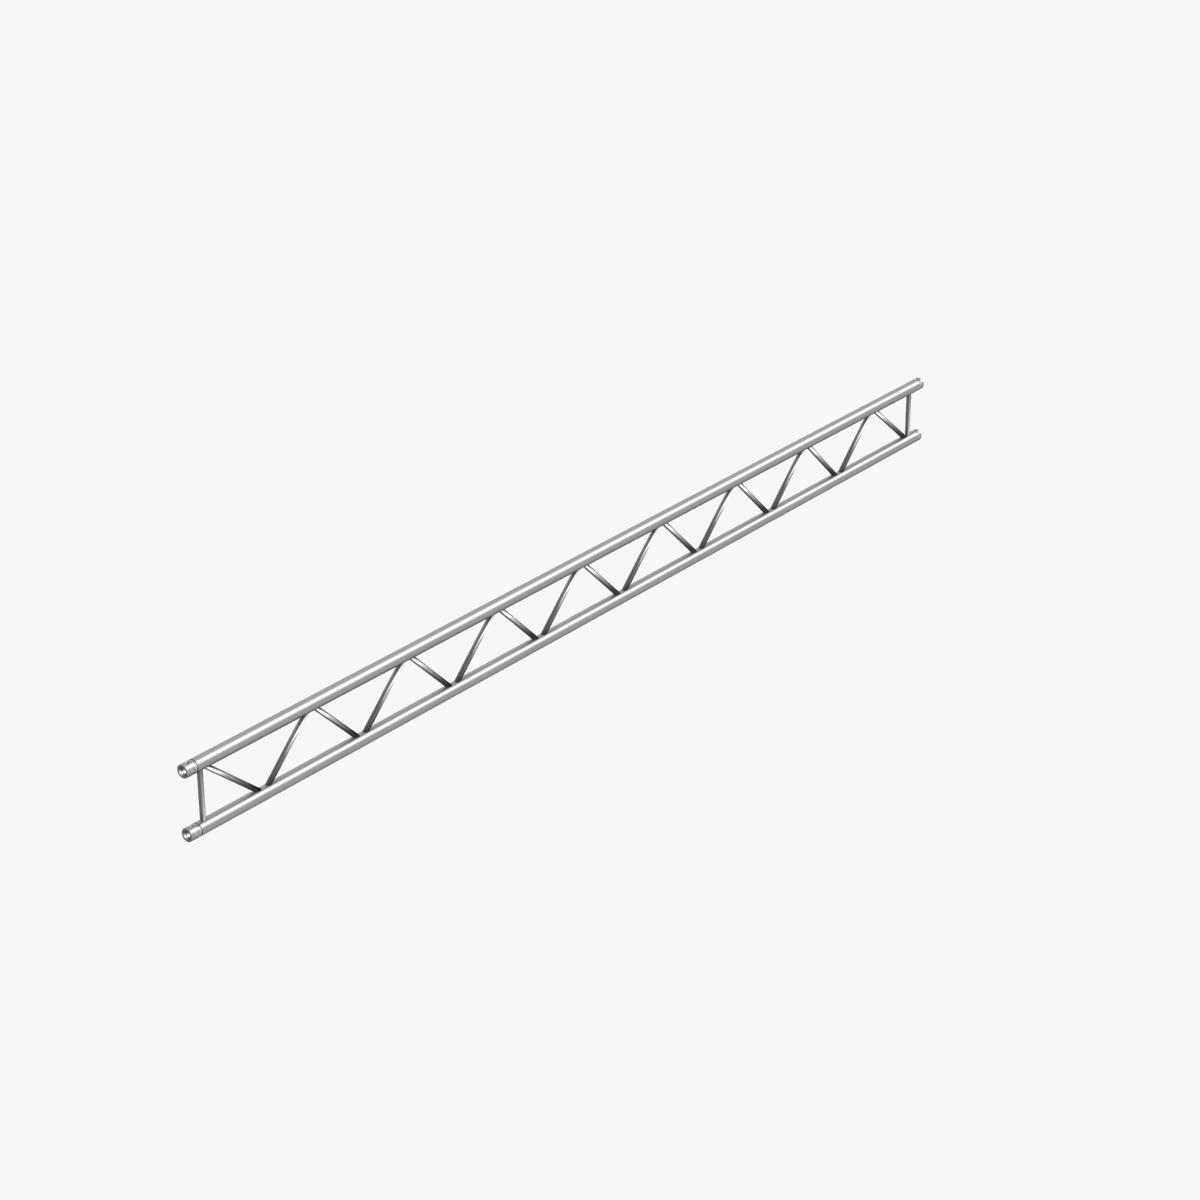 beam trusses (collection 24 modular pieces) 3d model 3ds max dxf fbx bmp blend c4d dae other obj 268735